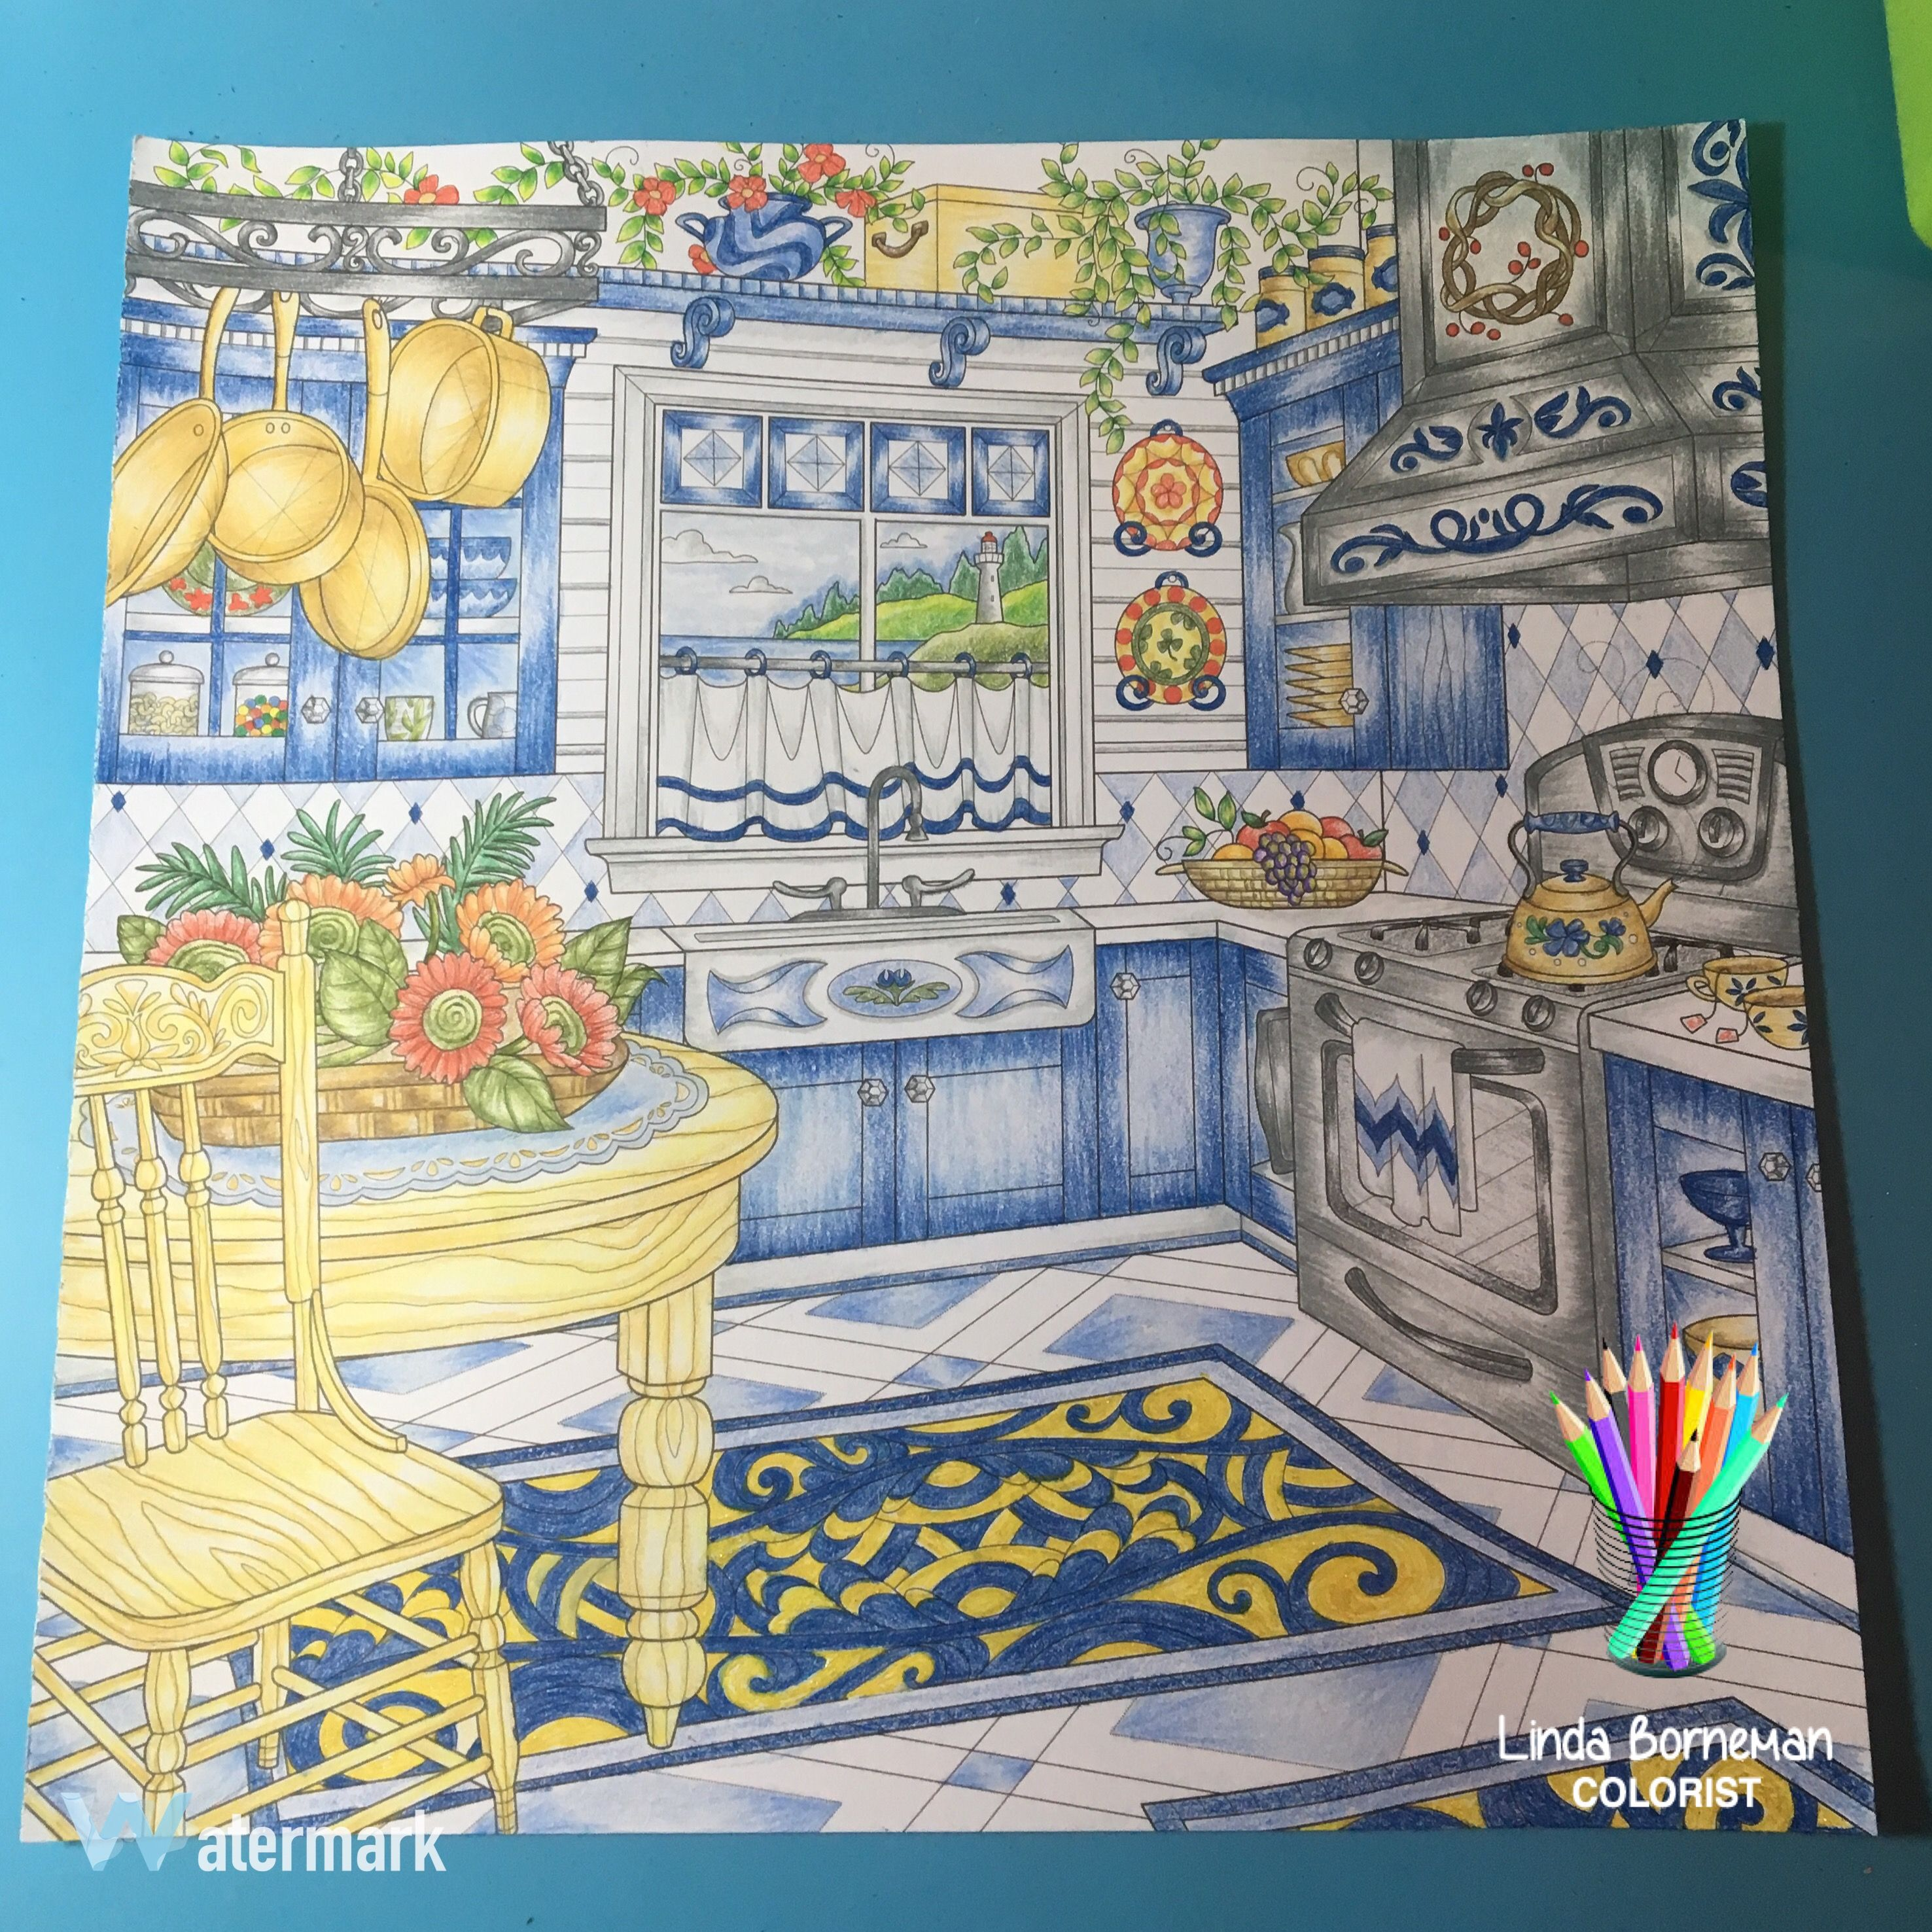 - From Come Home To Color Coloring Book By Debbie Macomber. Colored